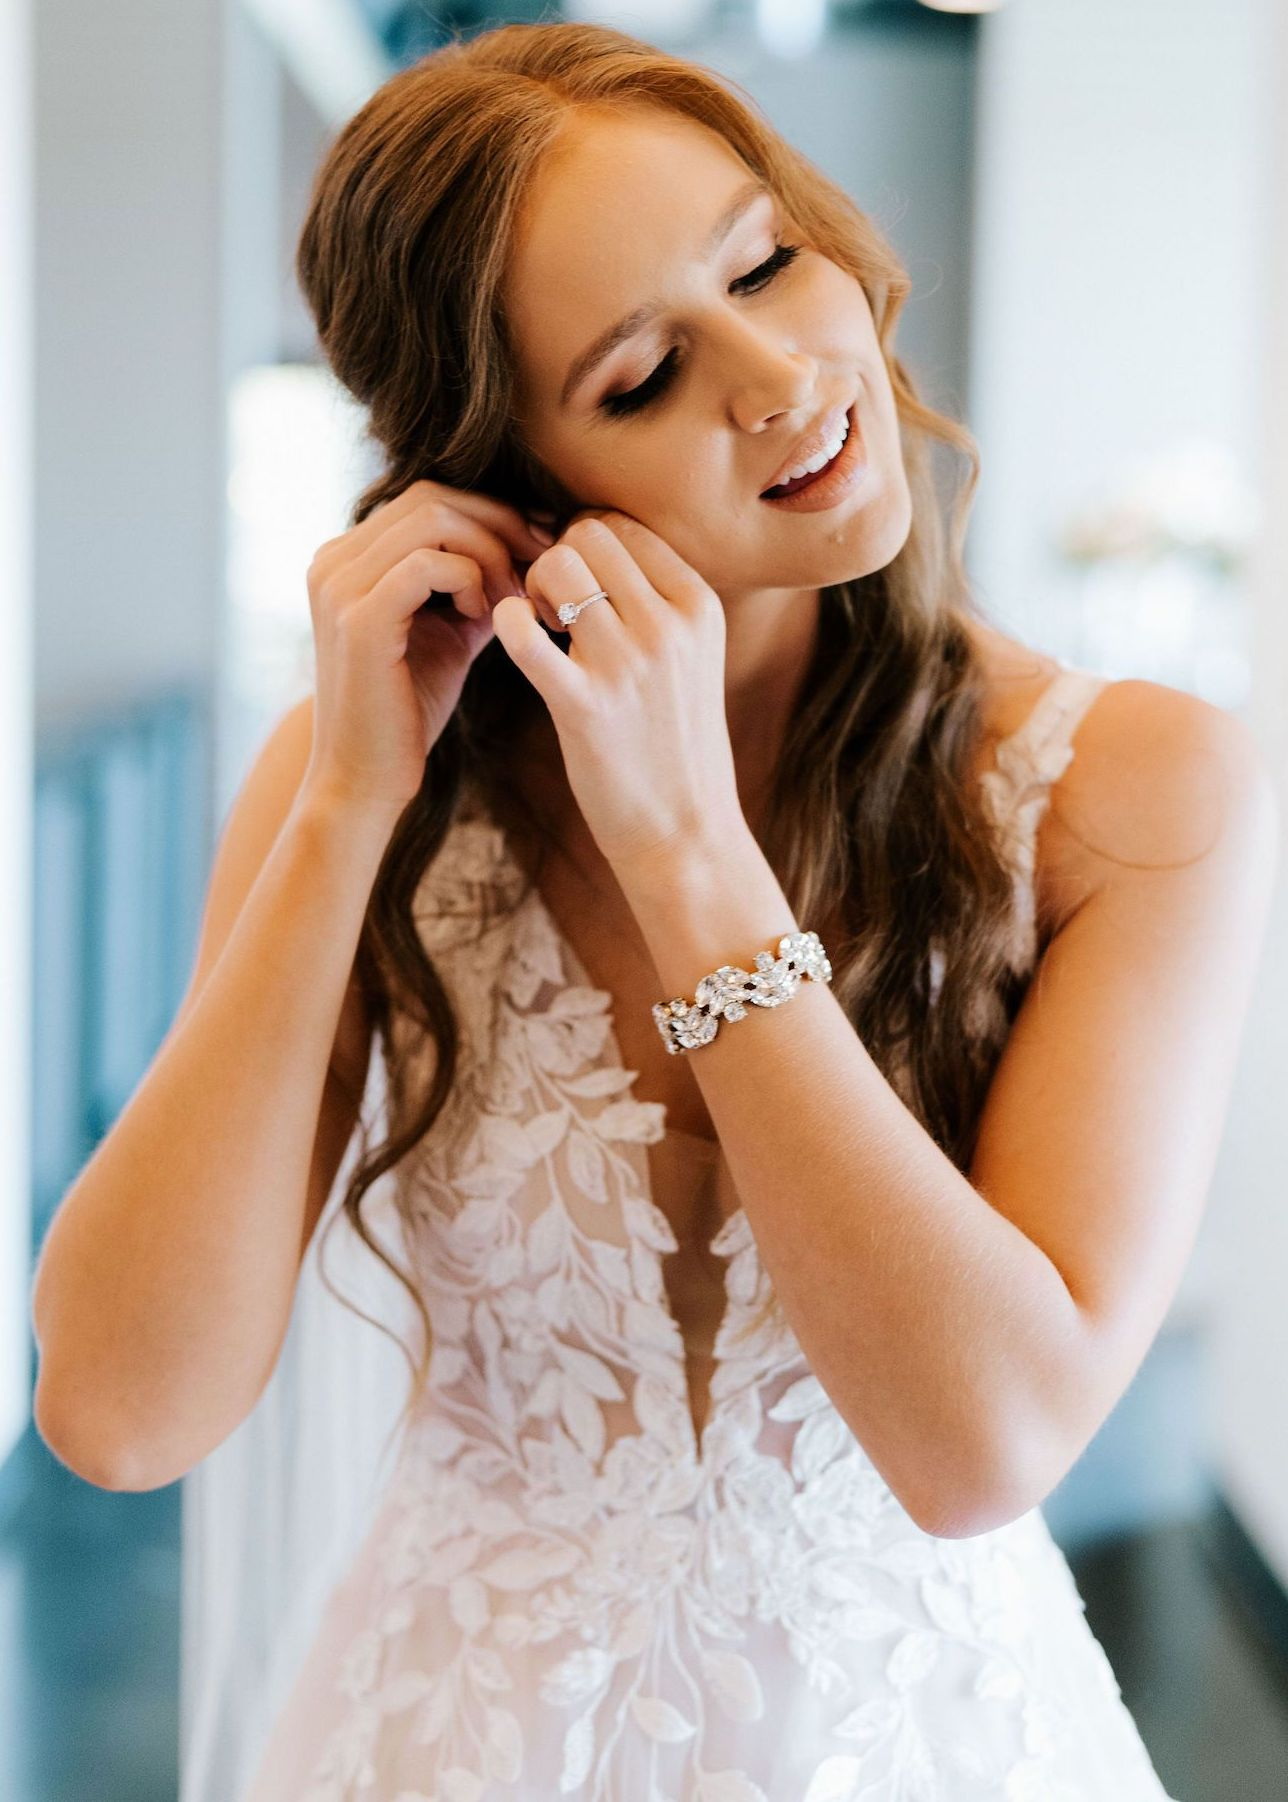 A bride in delicate, blush makeup and soft curls puts on her wedding earrings.